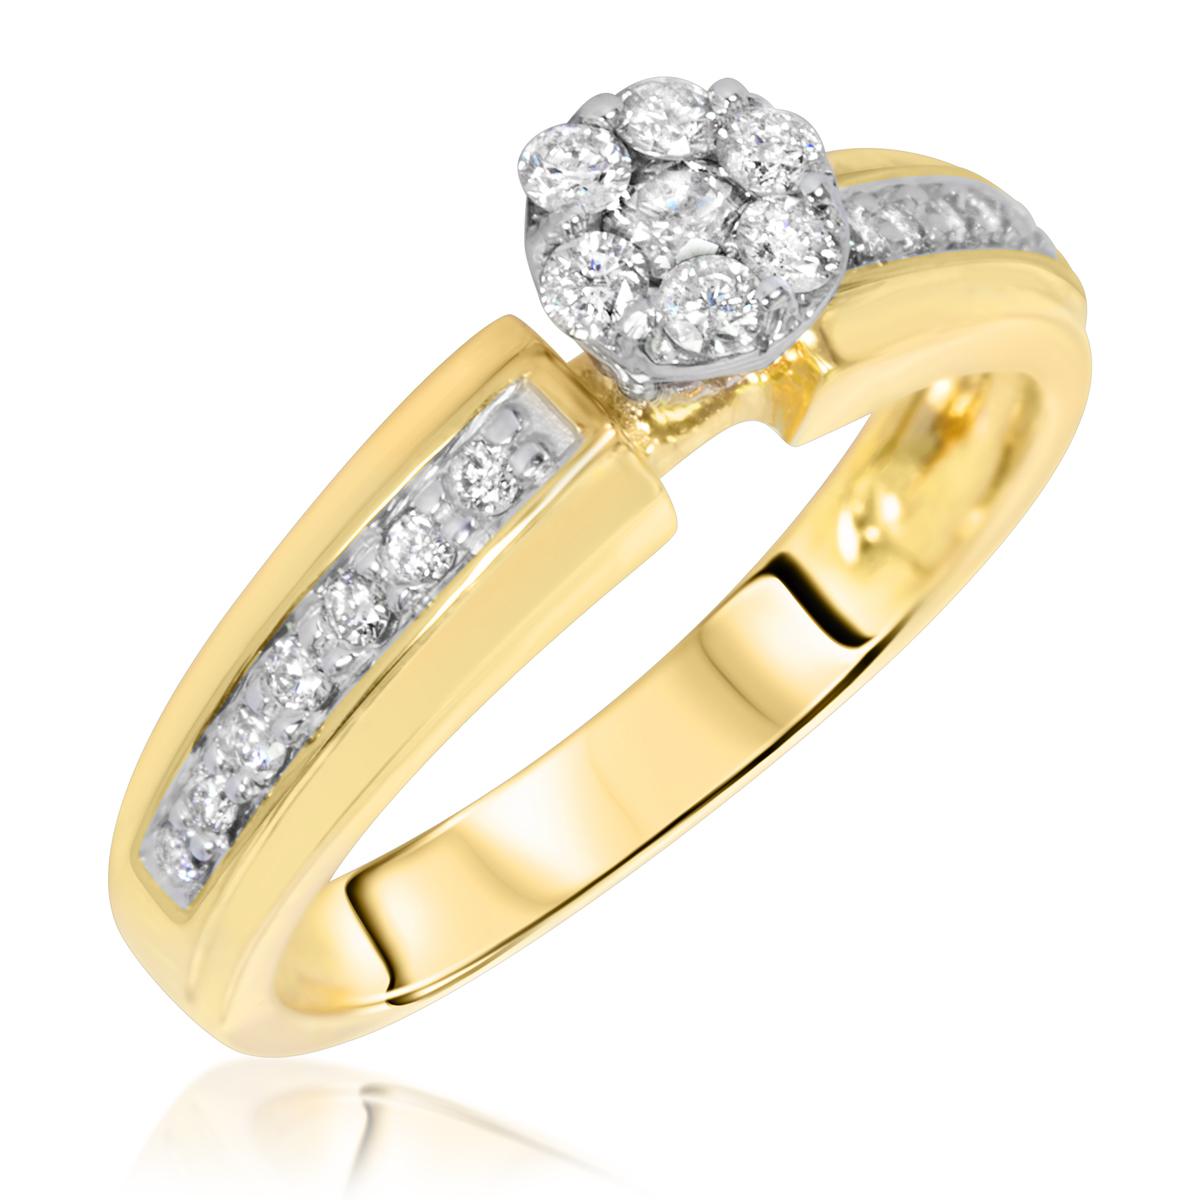 3 8 Carat T W Diamond Women s Engagement Ring 14K Yellow Gold